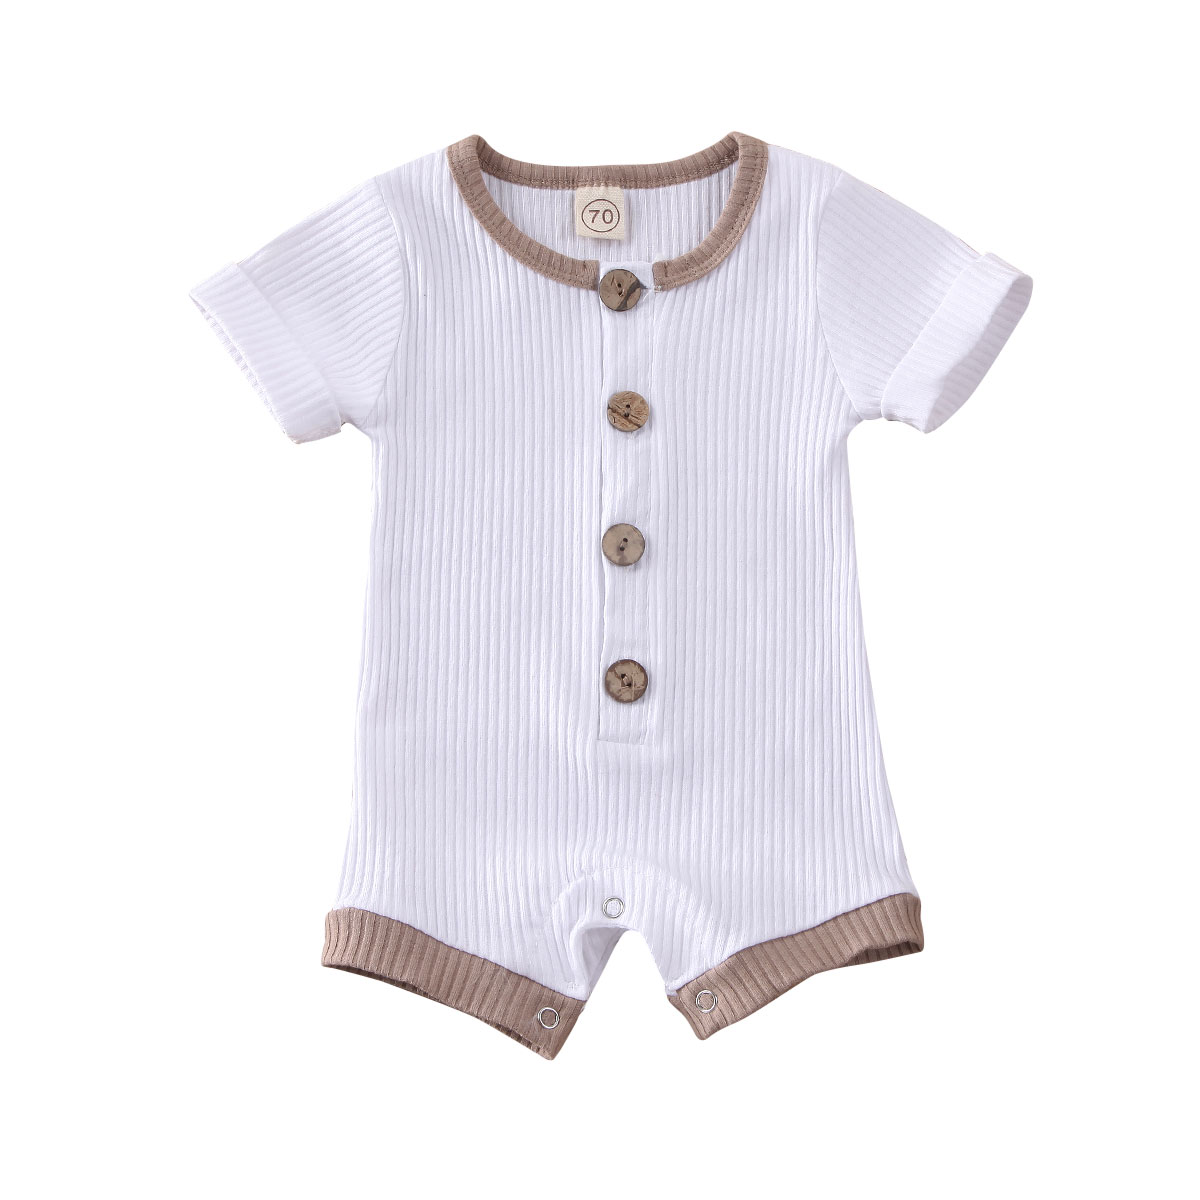 2021 Newborn Infant Baby Summer Clothing Boys Girls Clothes Ribbed Solid Romper Jumpsuit Short Sleeve Outfit 0-18M Kids Clothes